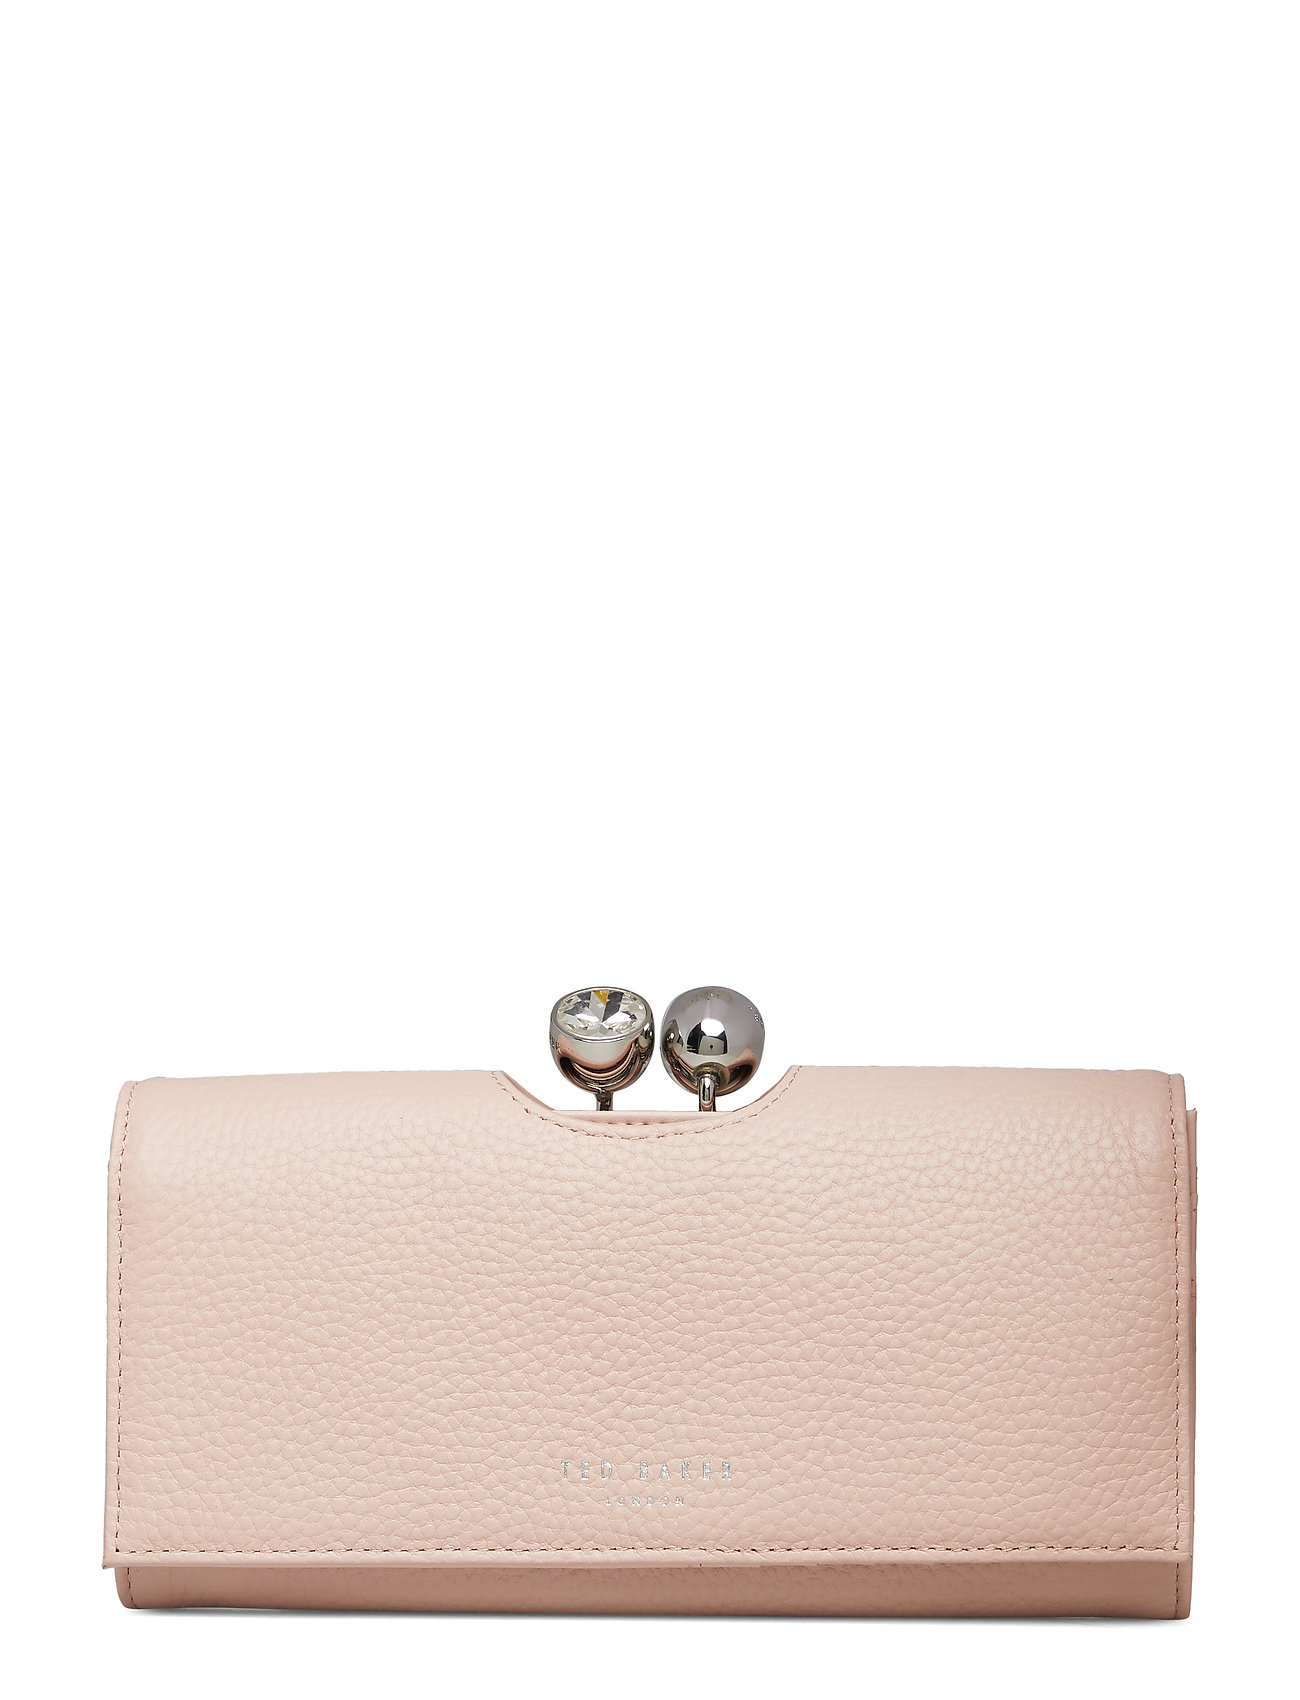 TED BAKER Solange Bags Card Holders & Wallets Wallets Pink TED BAKER